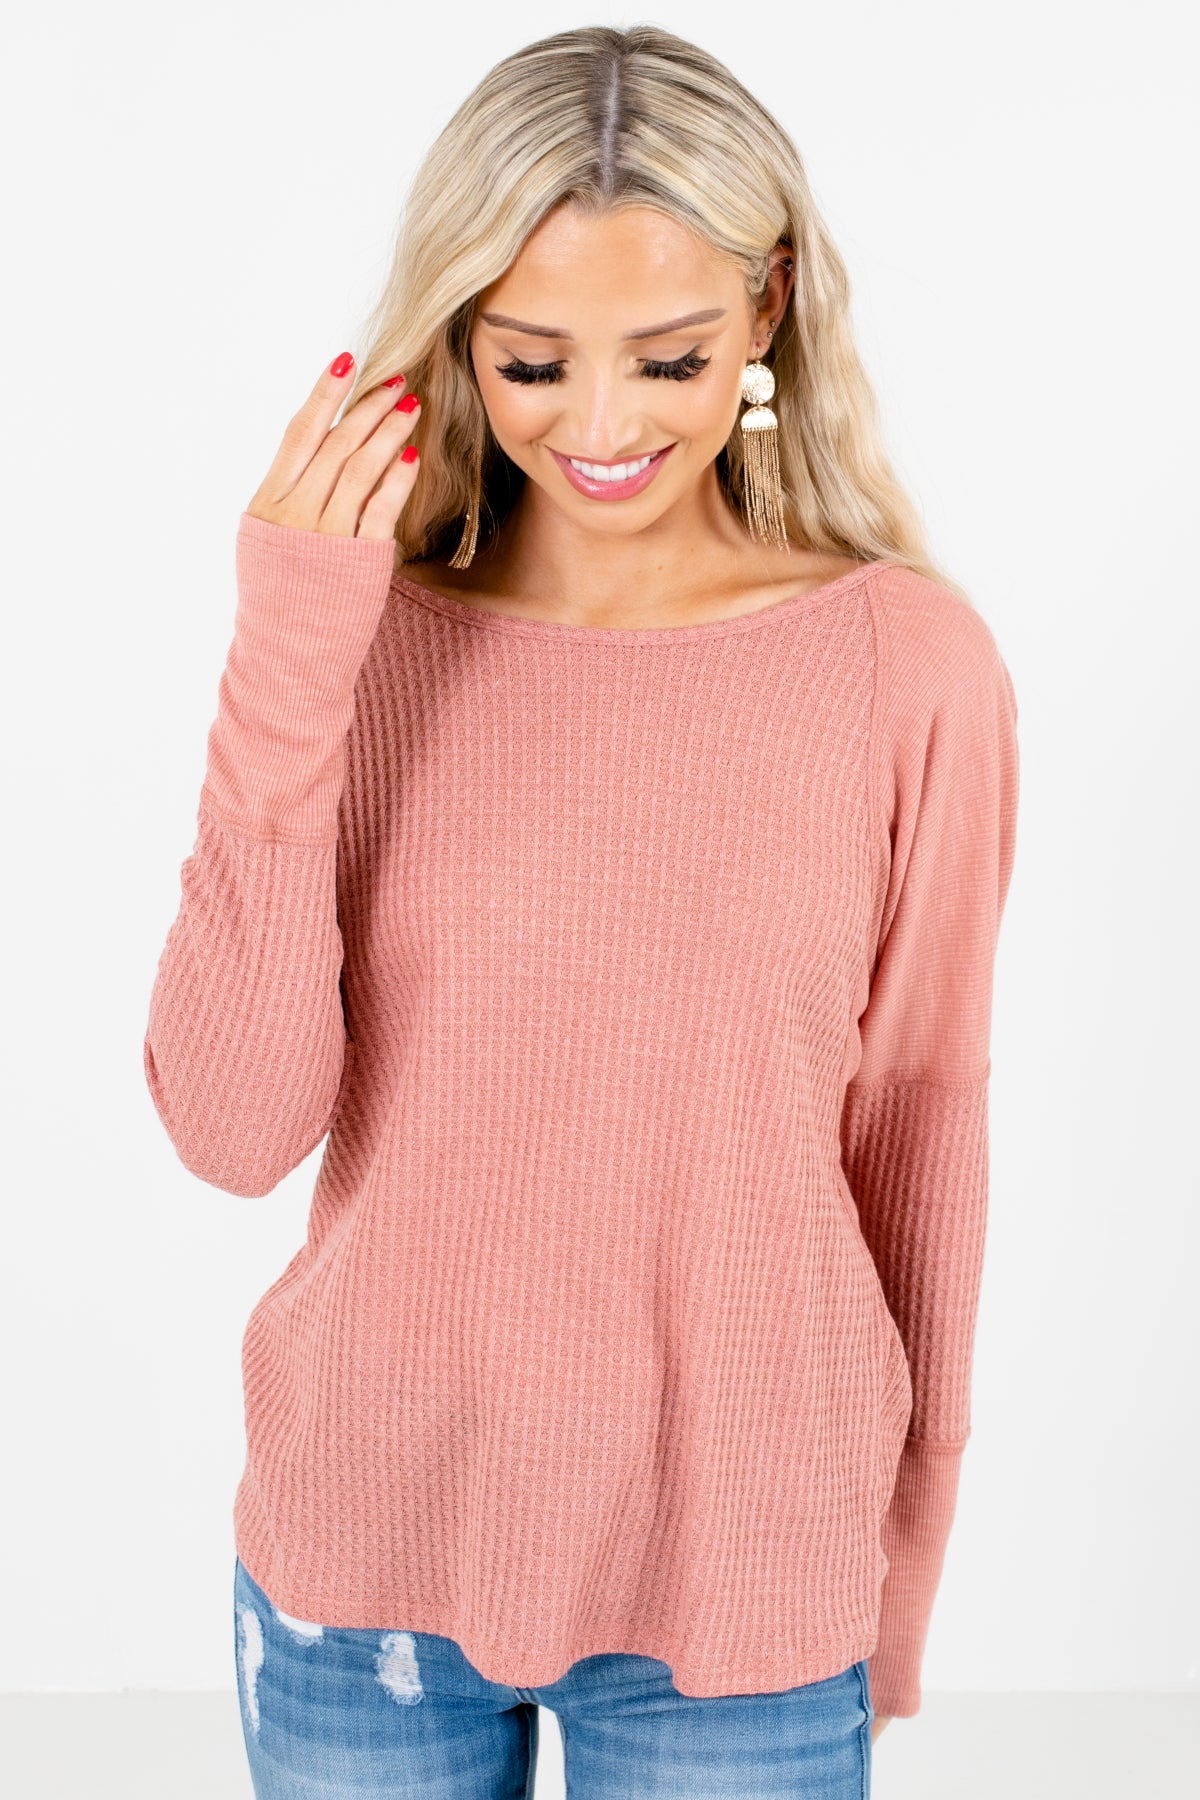 Pink High-Quality, Waffle Knit Material Boutique Tops for Women